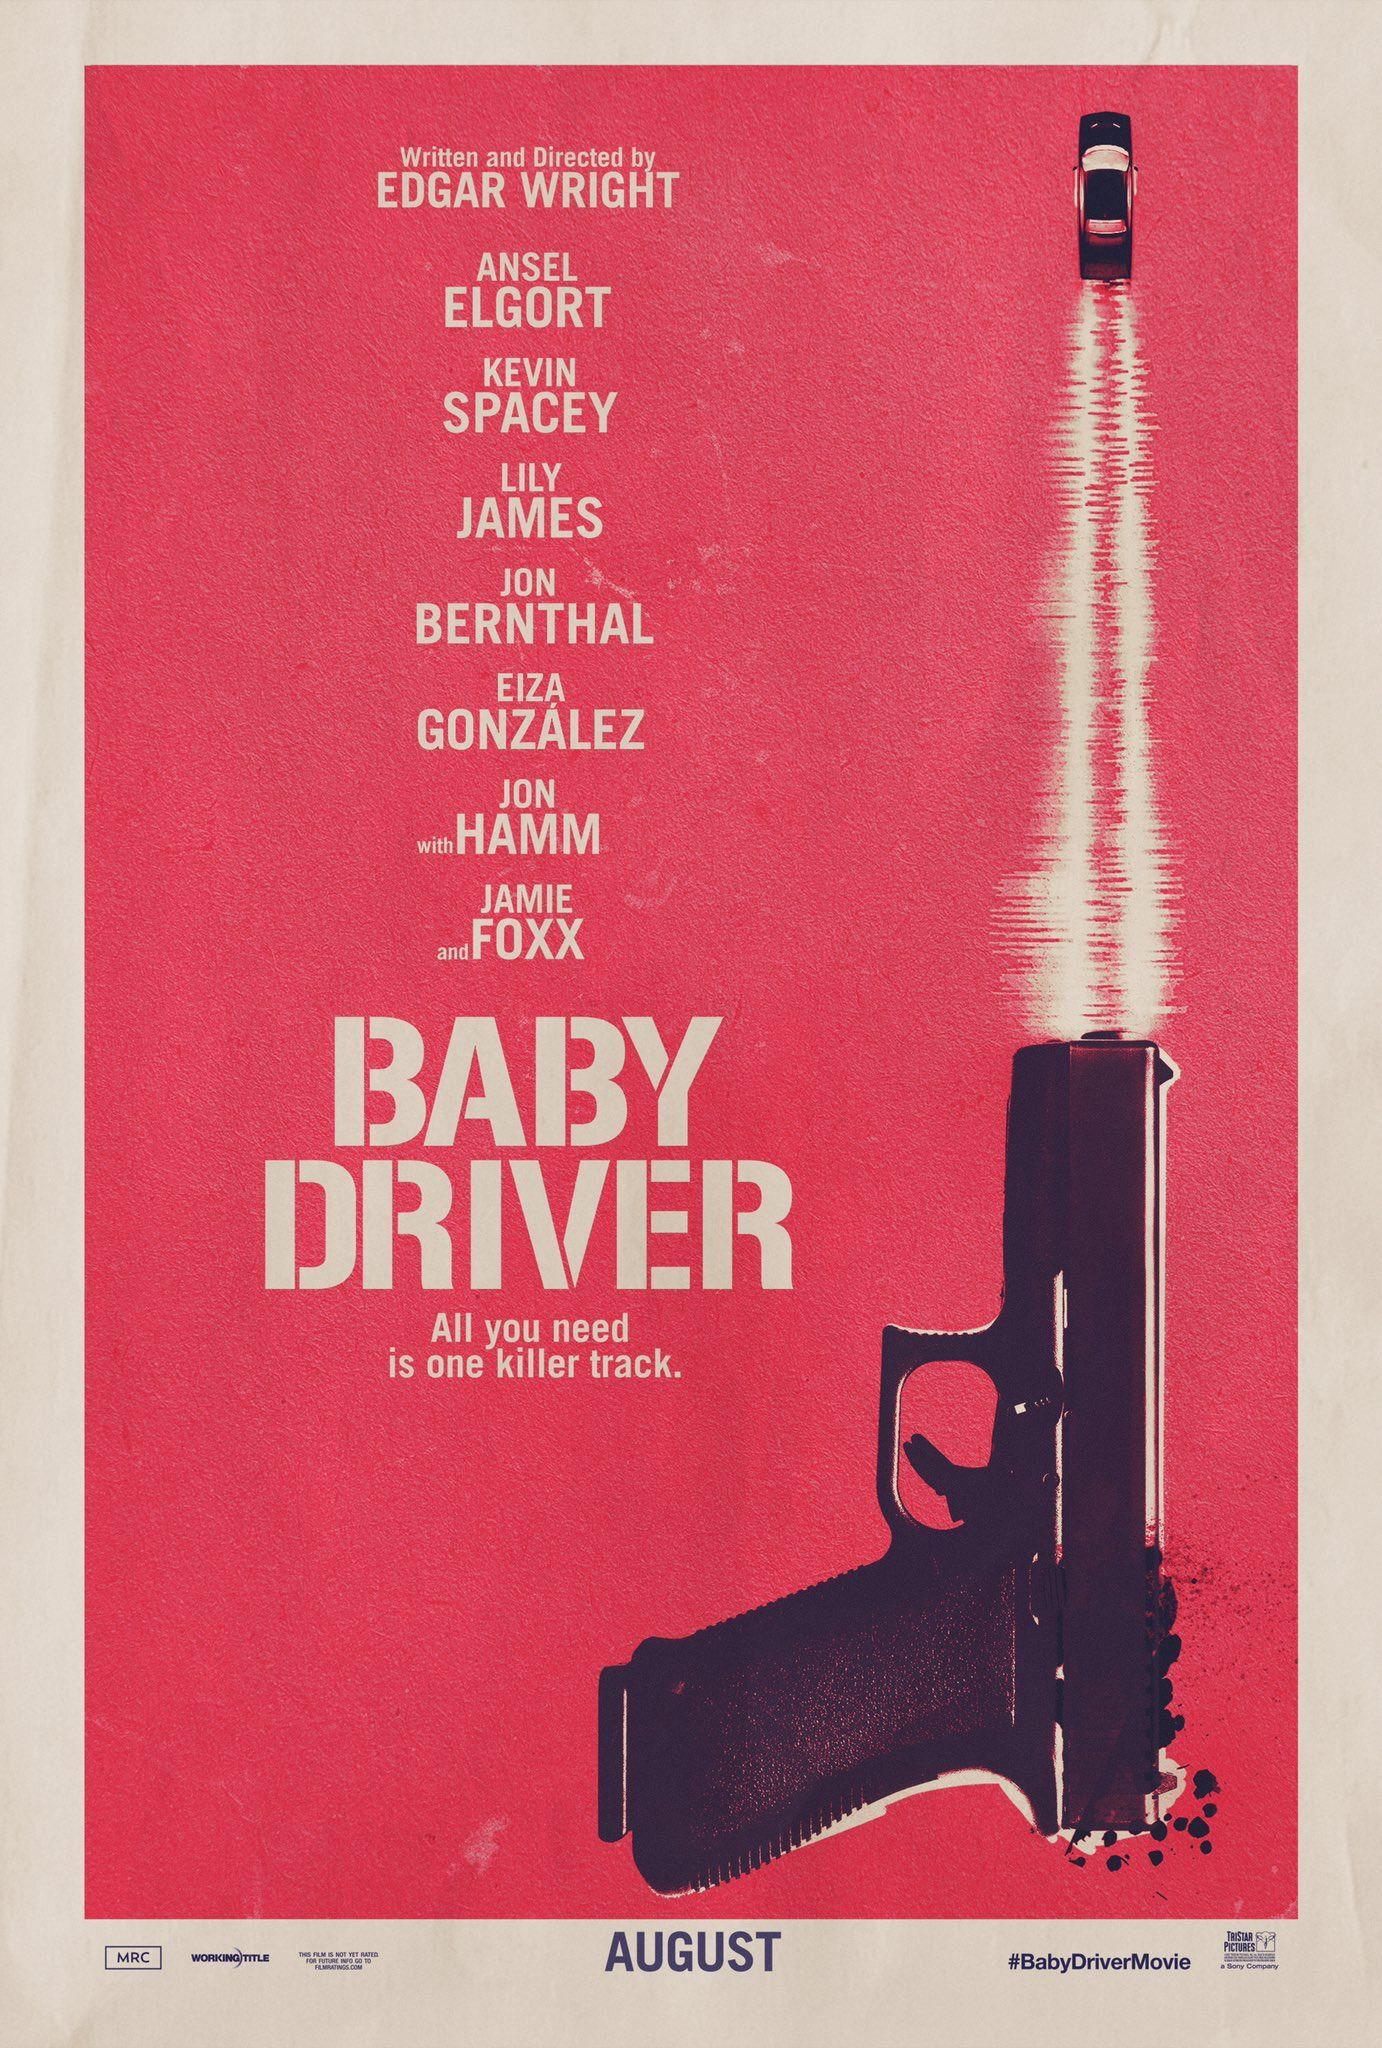 Return to the main poster page for baby driver 1 of 4